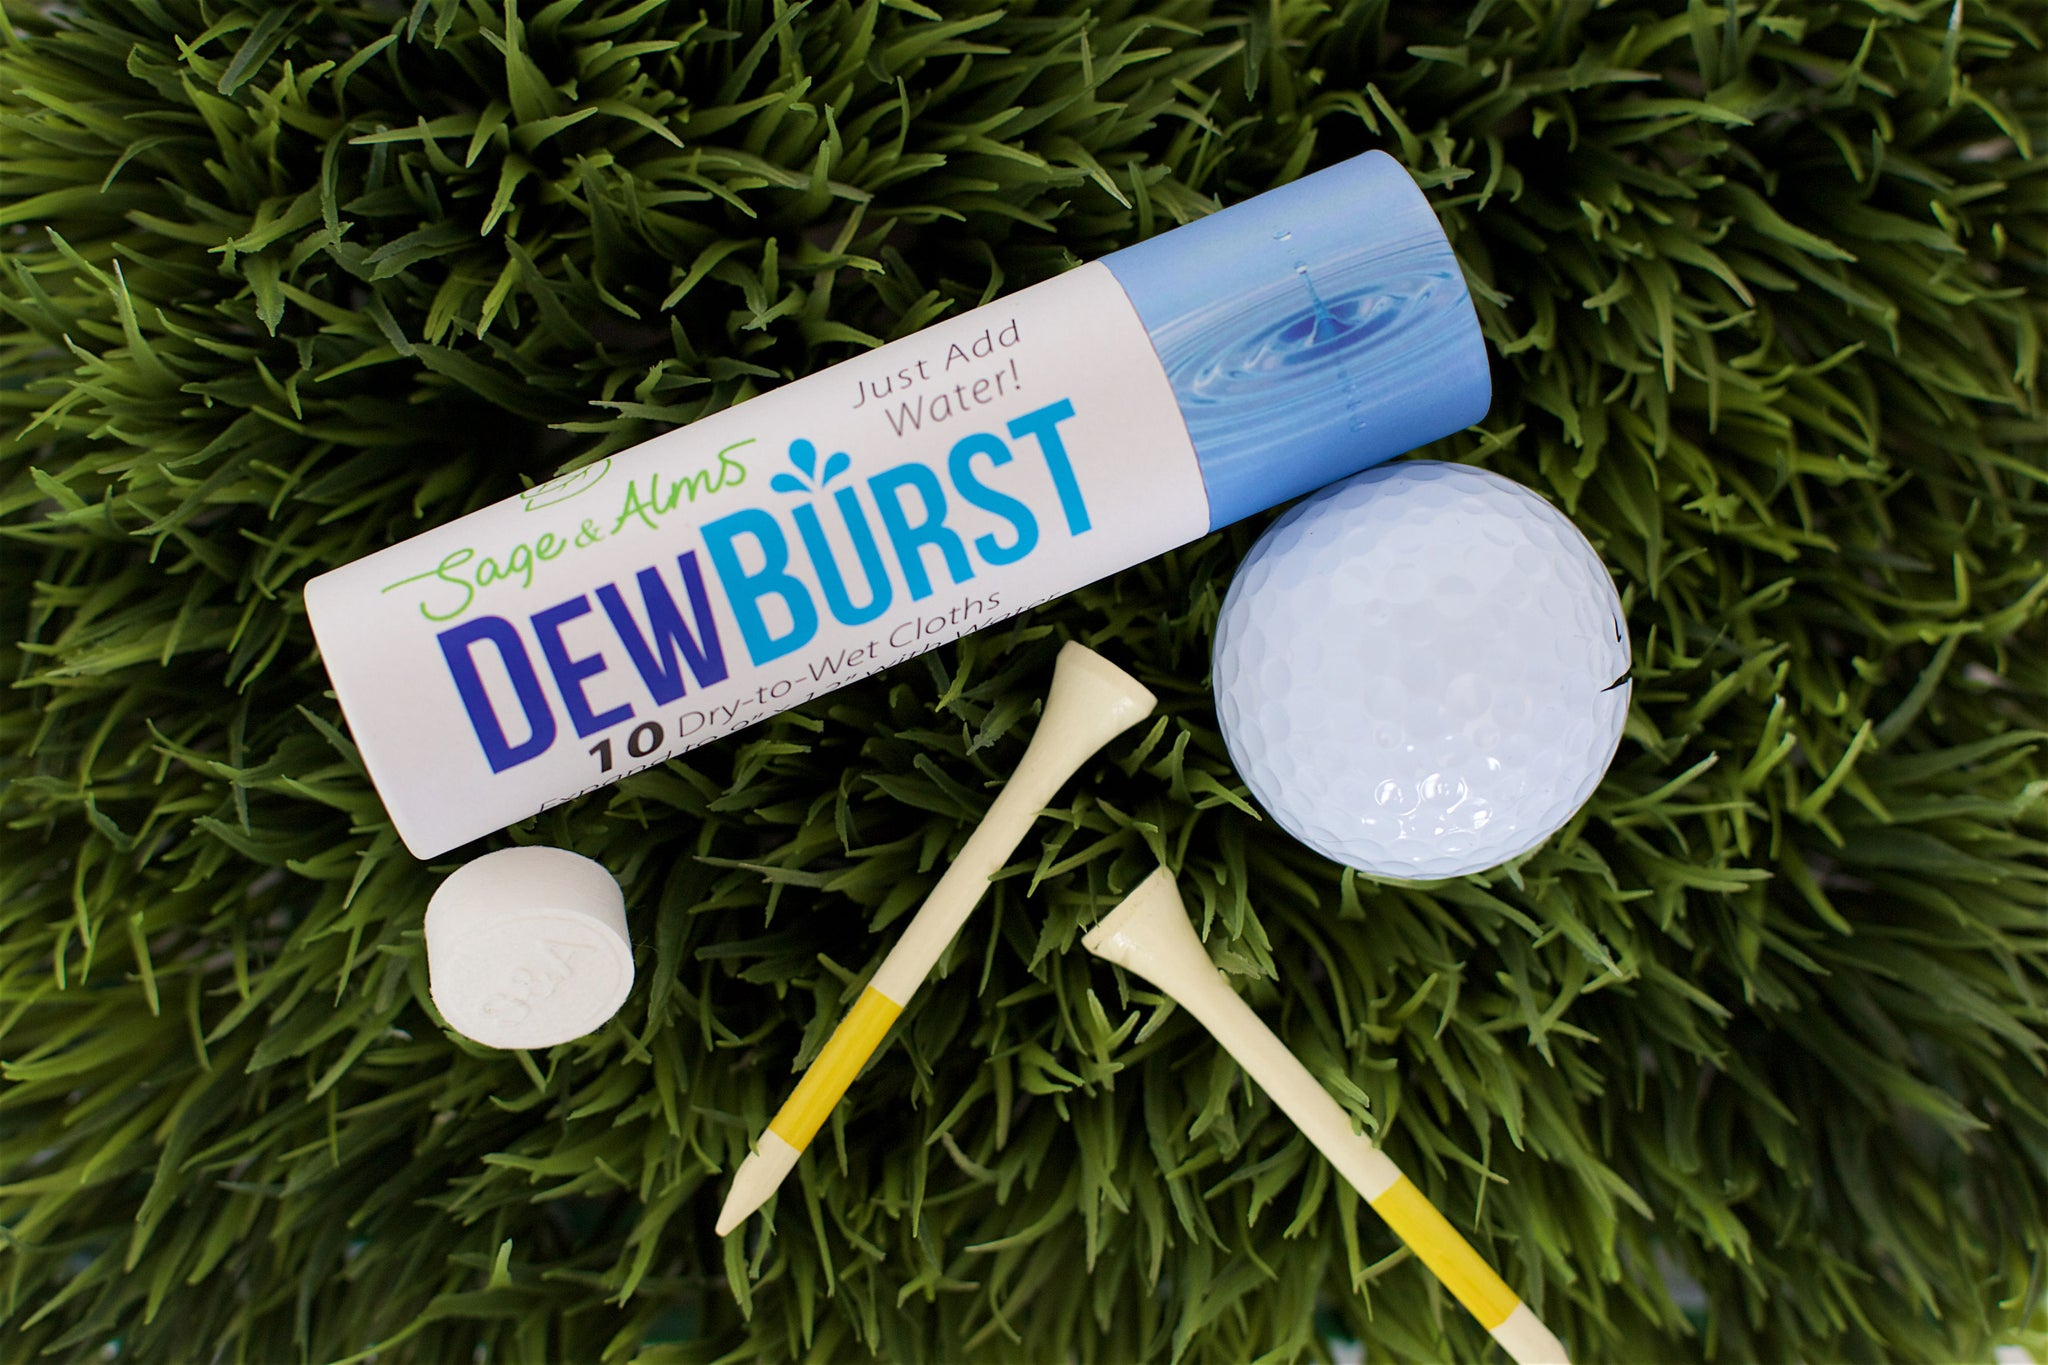 3 Tubes | 30 Cloths | $3.59 Per Tube | DewBurst